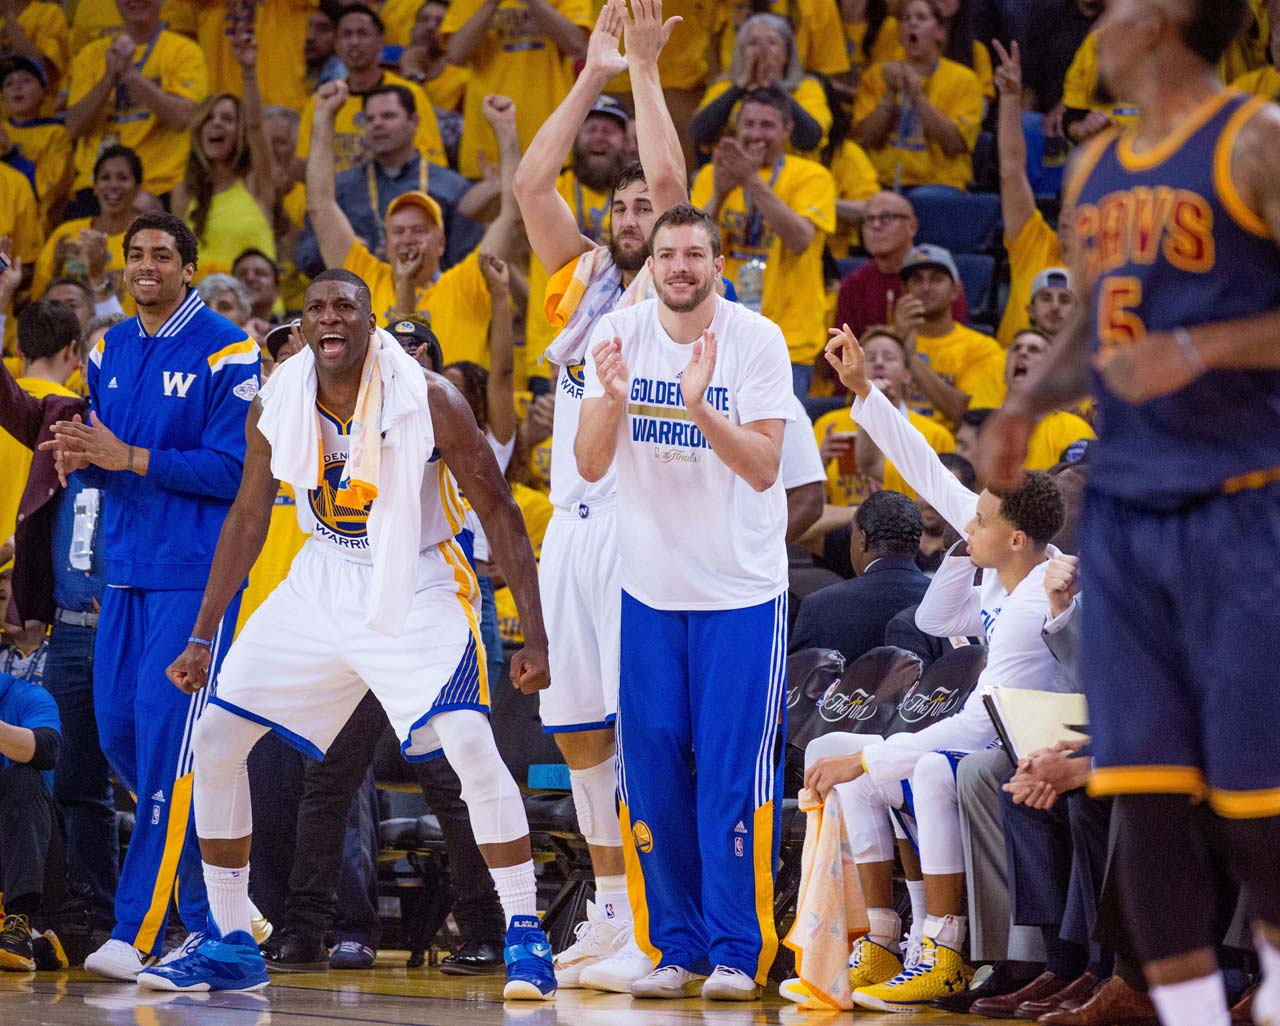 The Warriors rallied from an early 14-point deficit, much to the delight of their bench and their fans.